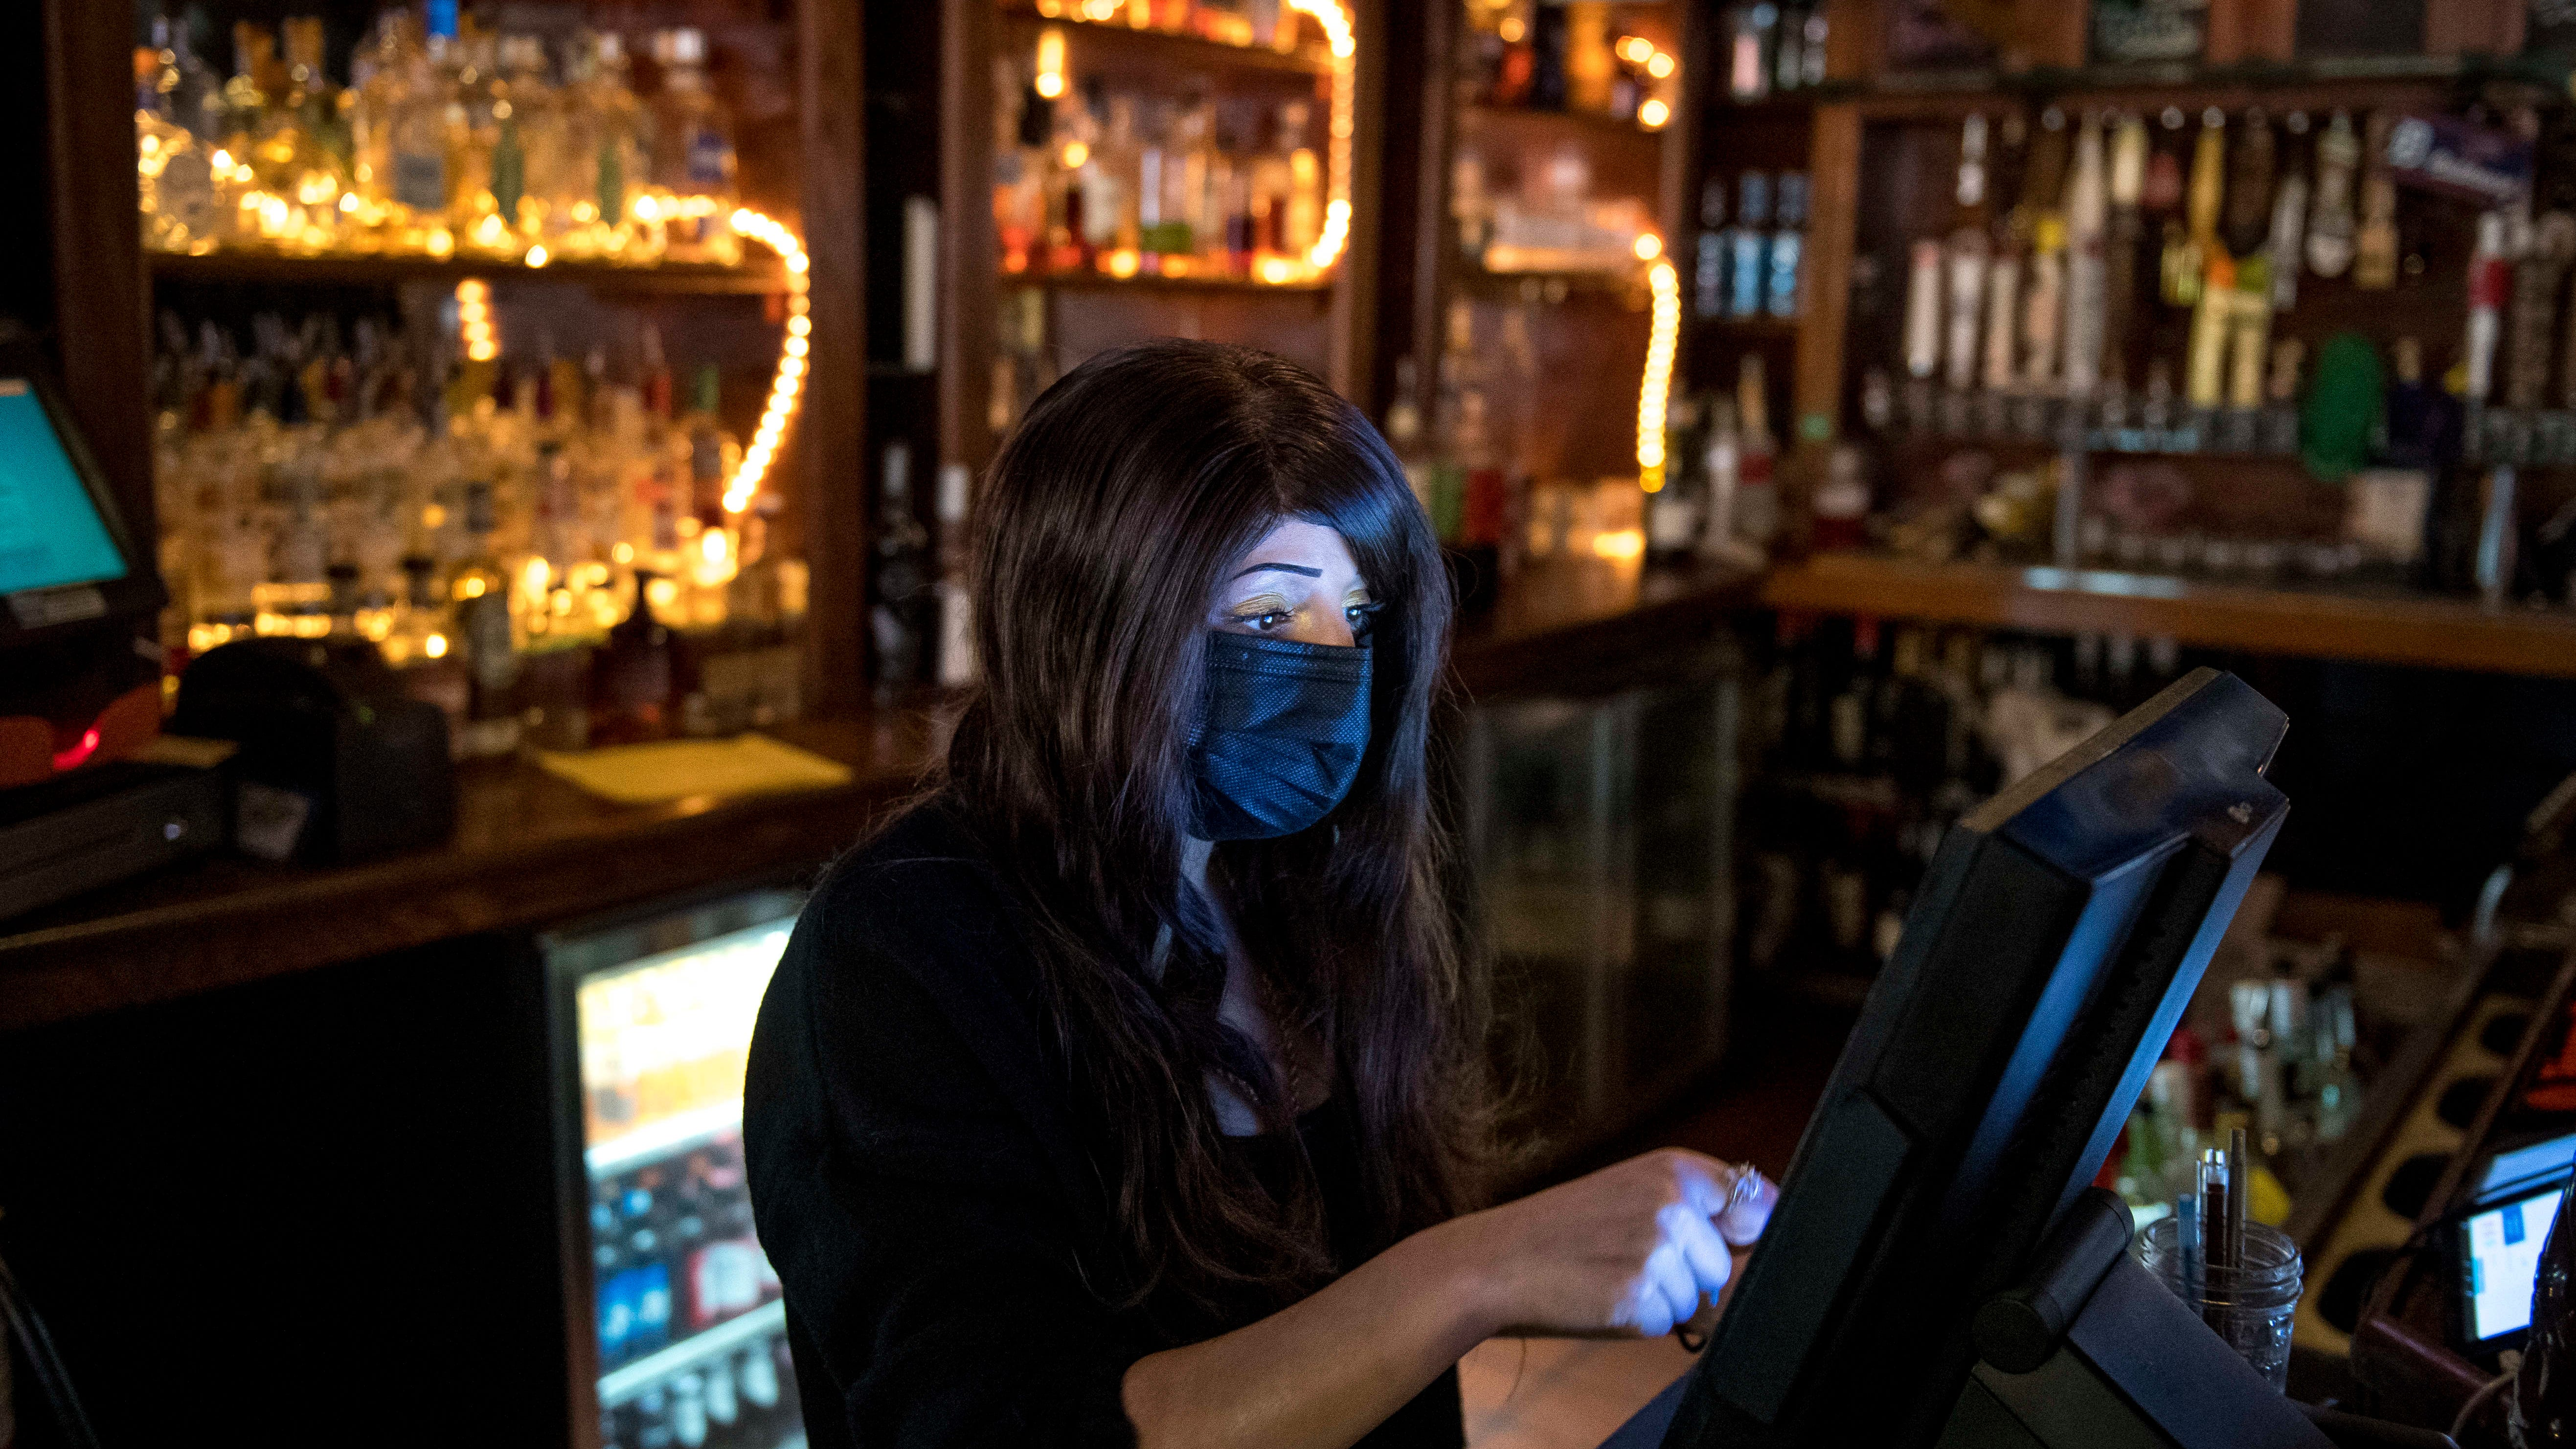 Ericka Torres of Livonia puts in an order at McShane's Irish Pub & Whiskey Bar in Detroit on Thursday, April 29, 2021.